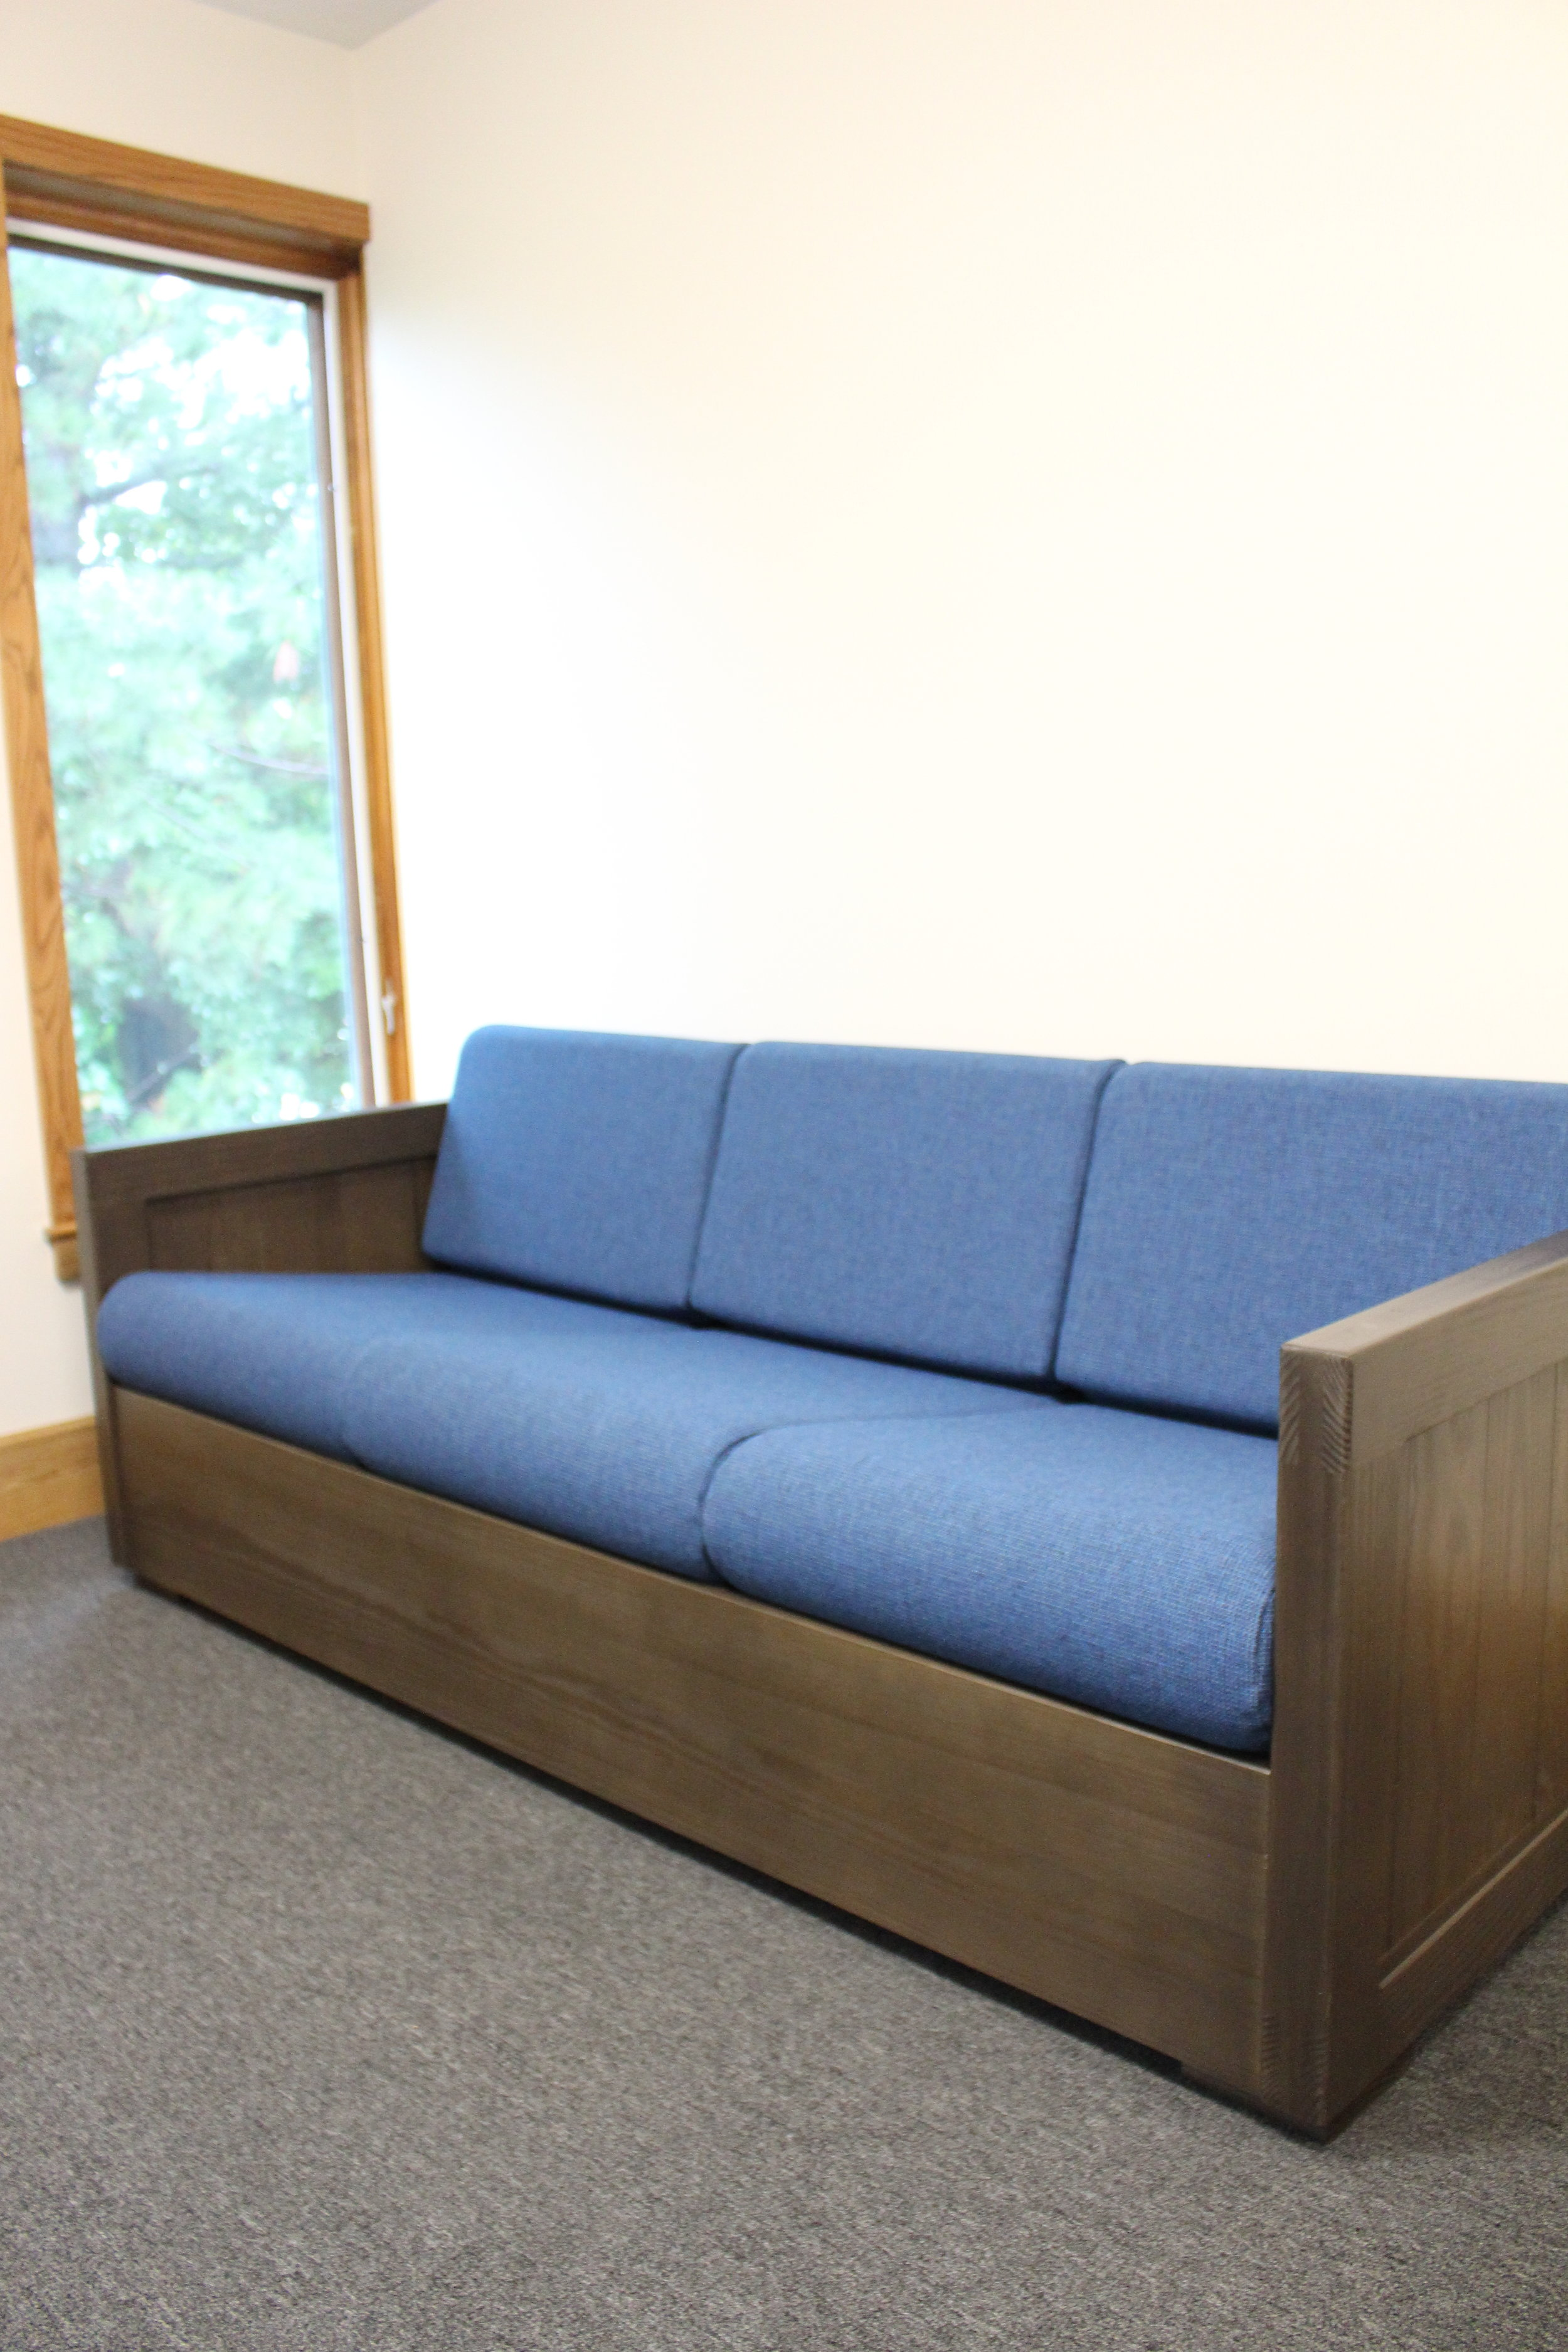 CLassic sofa in espresso finish with sherpa navy fabric cushions